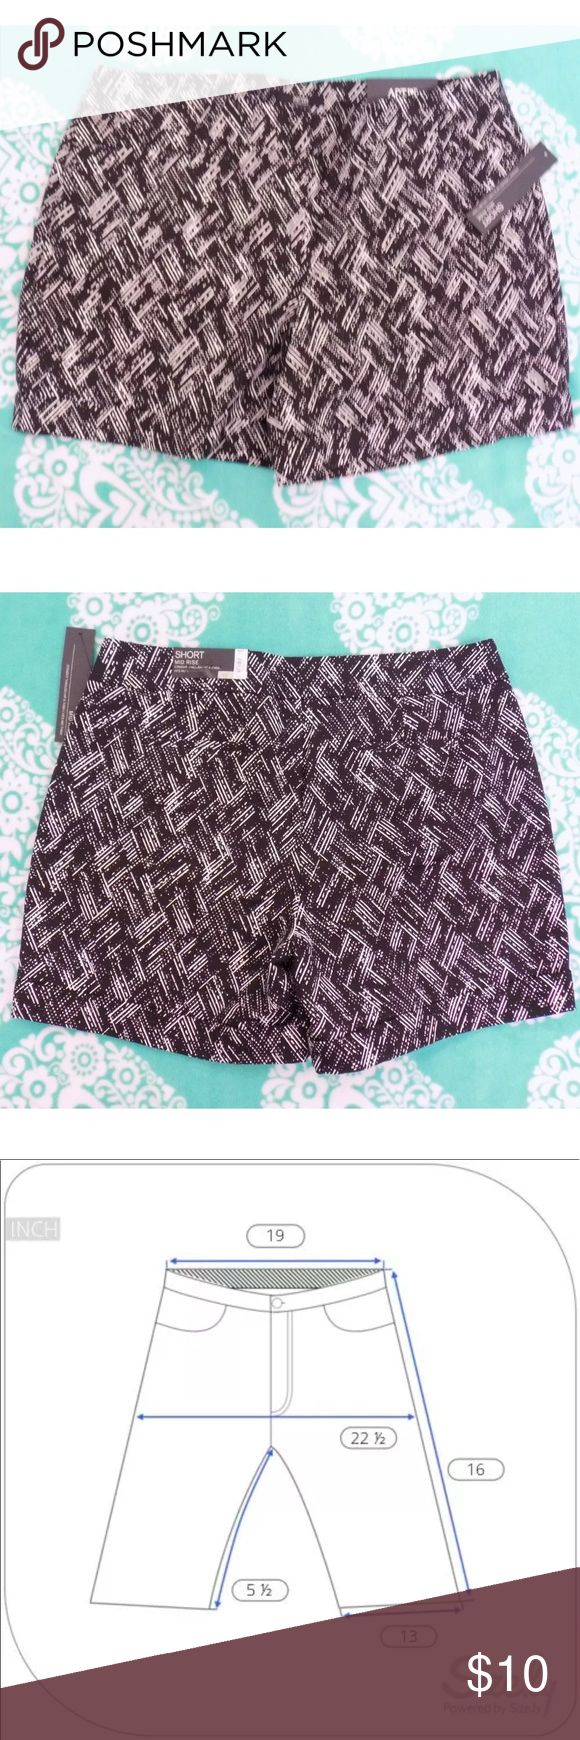 APT. 9 Women's Dressy Black & White Shorts Stretch APT. 9 Women's Dressy Black & White Shorts Stretch Sz 16 NEW w/ Tags 2 pockets in the front and 2 pockets in the back Stitched cuff Apt. 9 Shorts